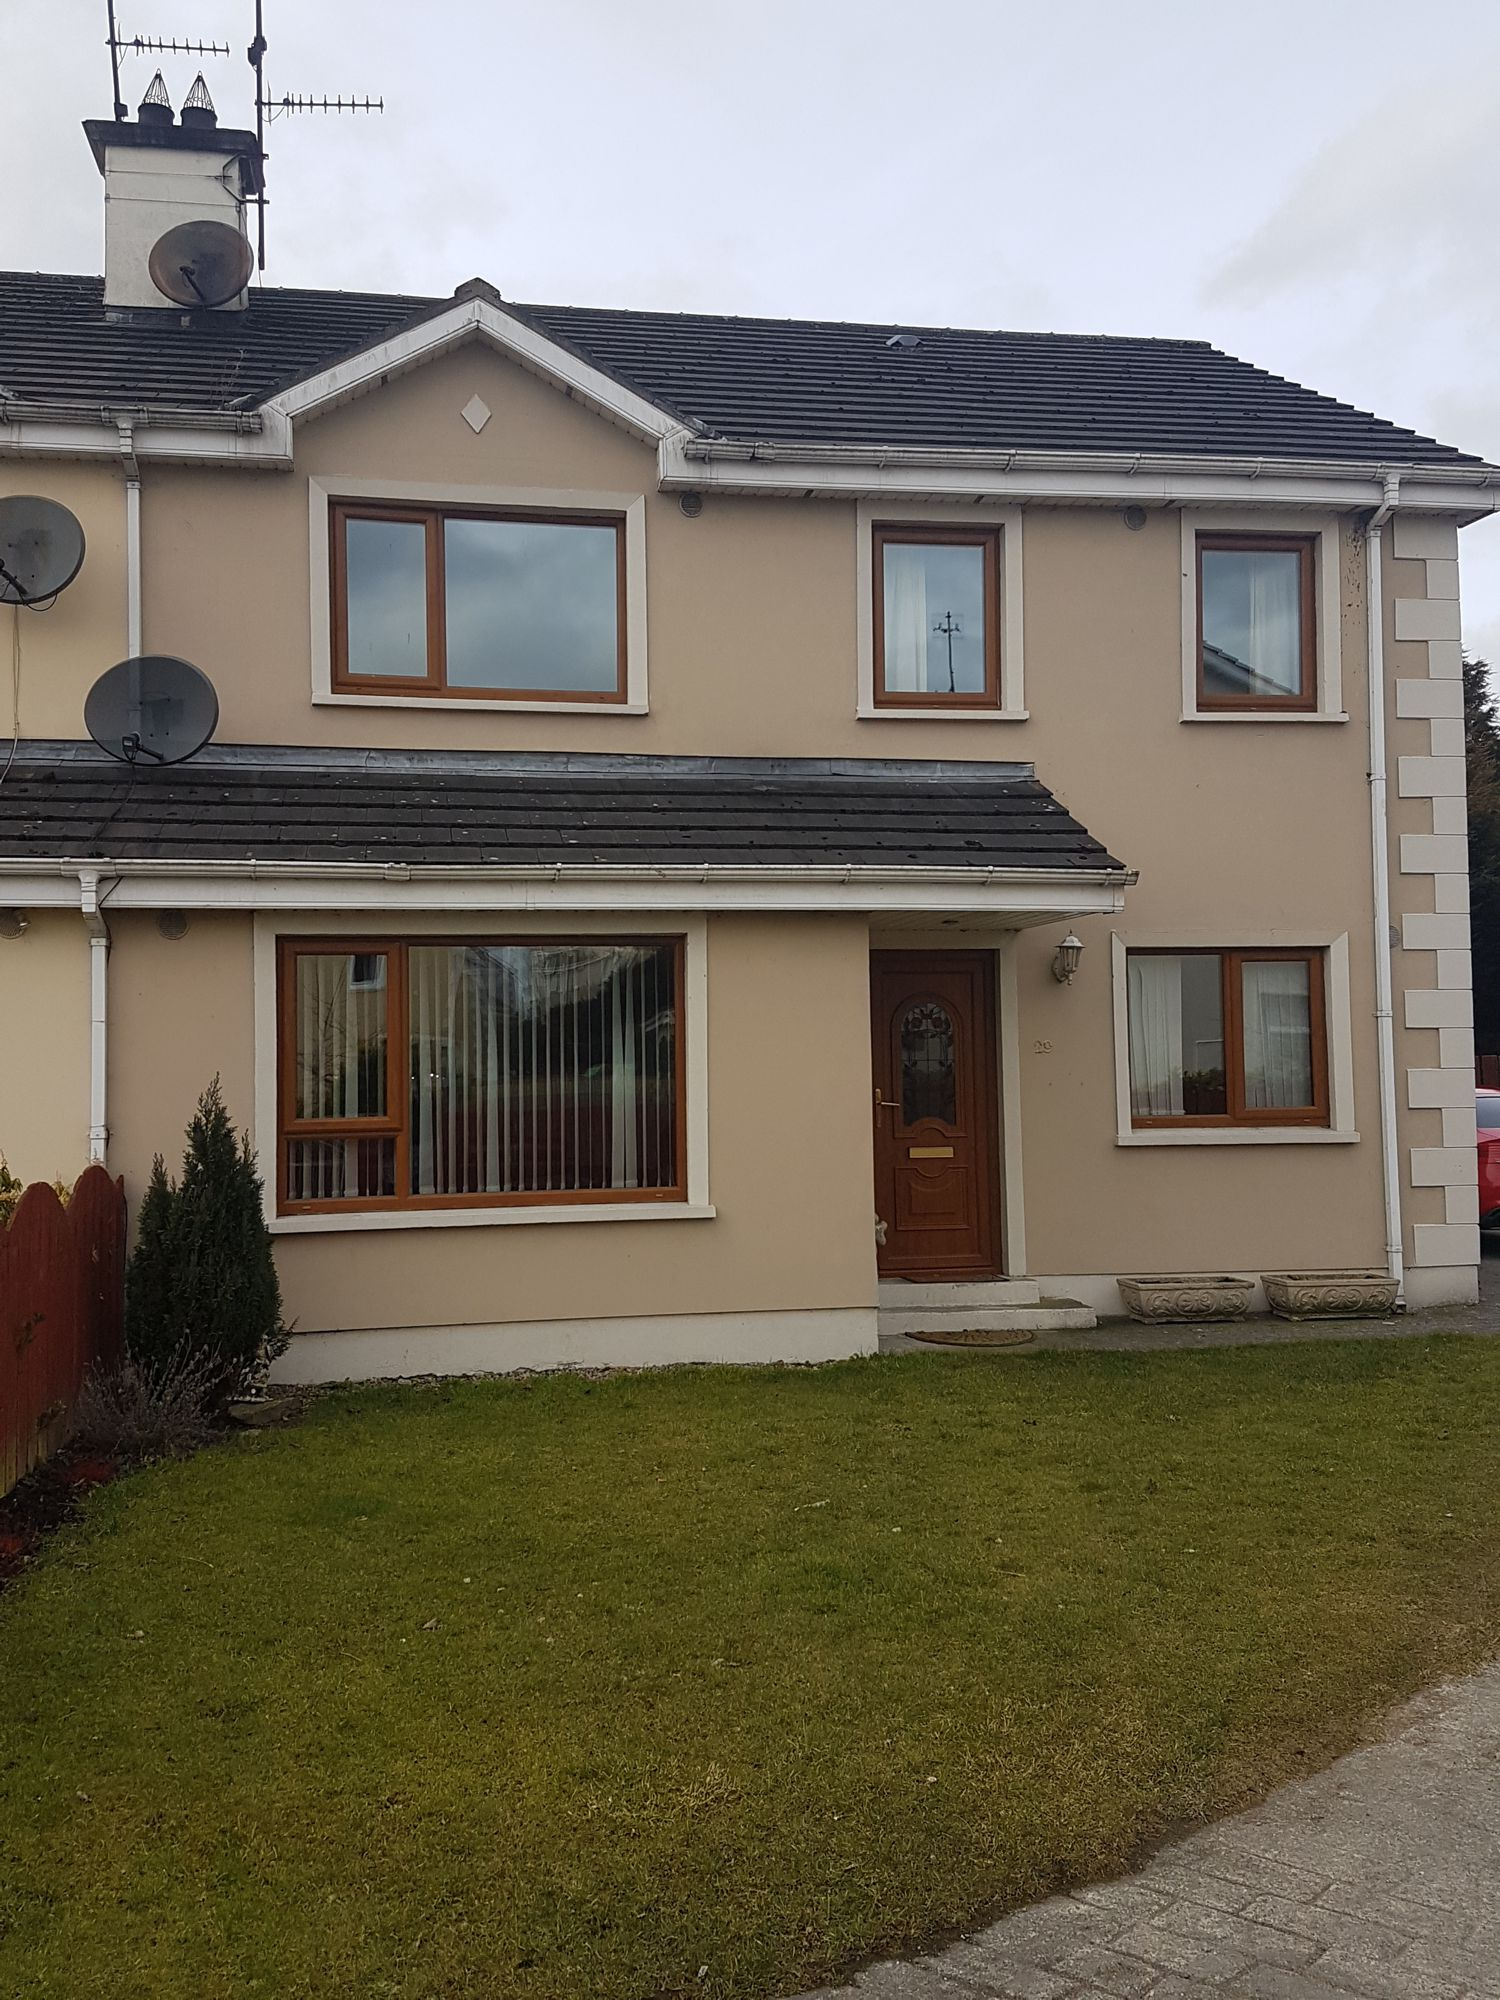 29 Beechwood Grove, Convoy, Co Donegal F93YK50